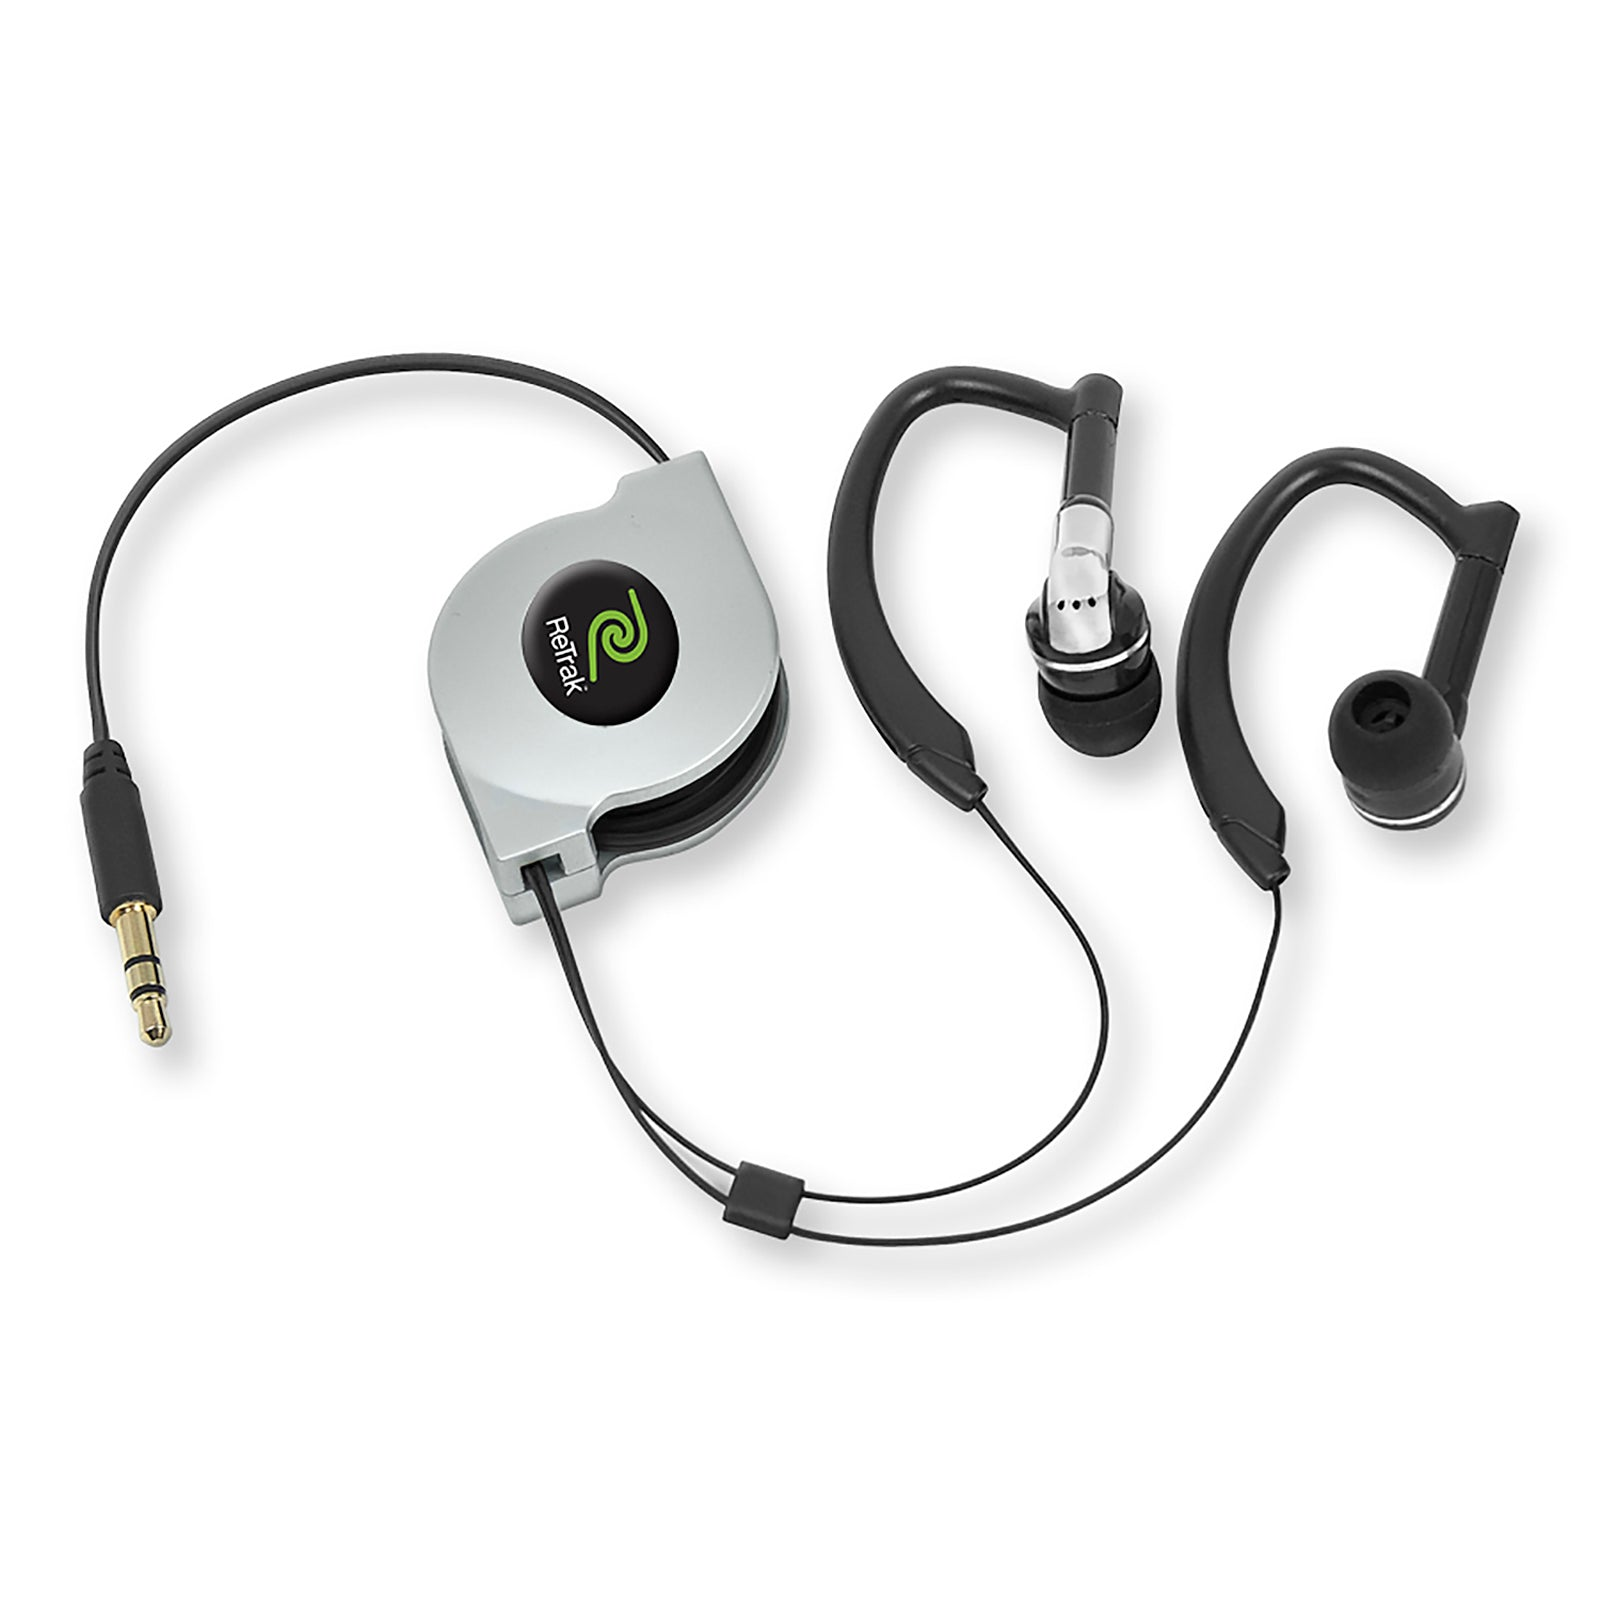 Over-the-ear Headphones | Sports Wrap Earbuds | Retractable Cord | Silver